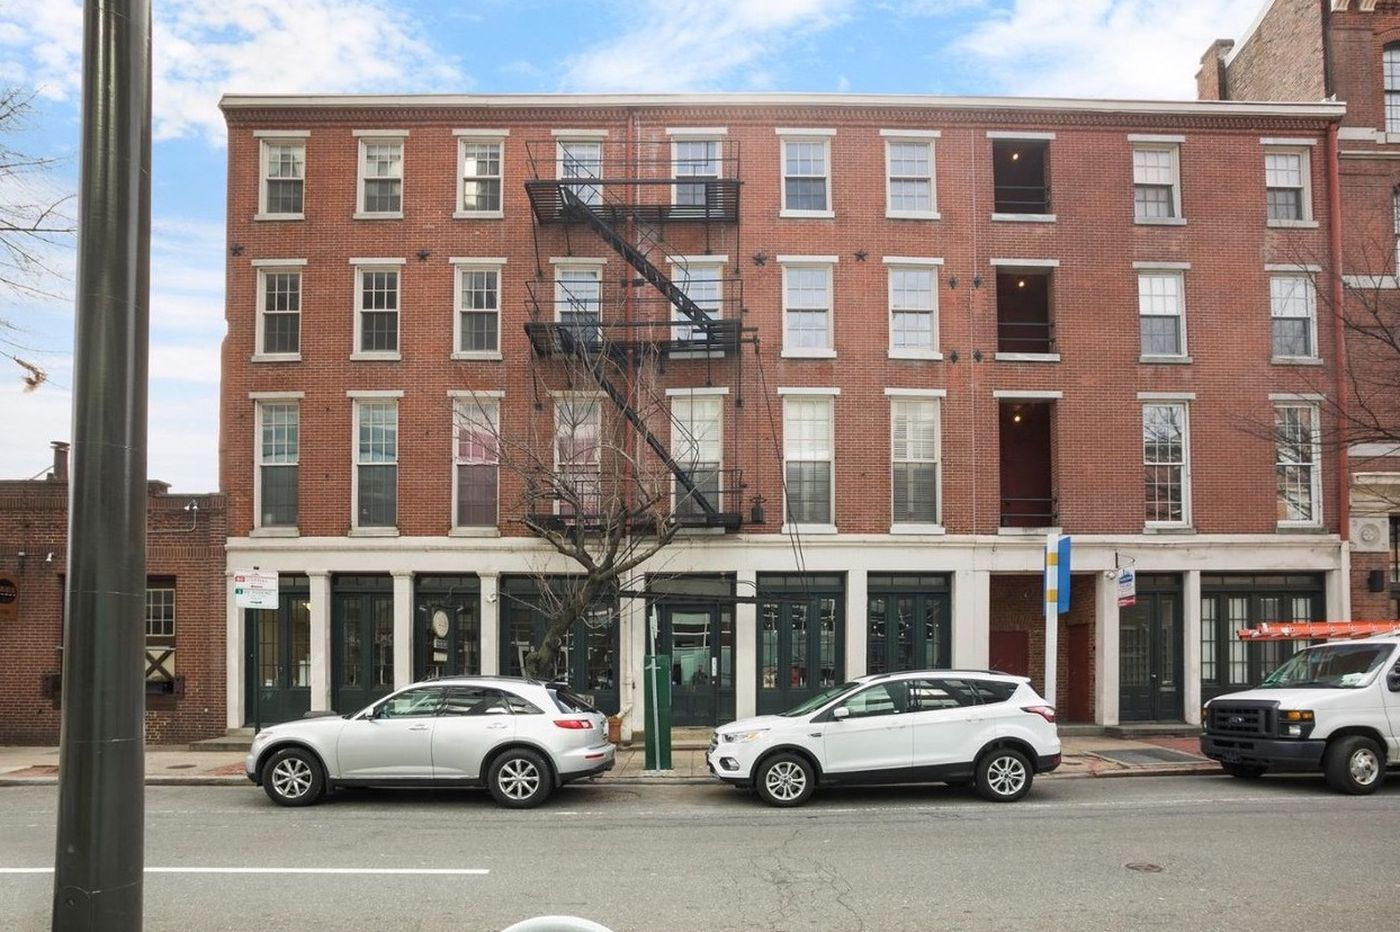 On the market: Three condos close to the action in Philadelphia